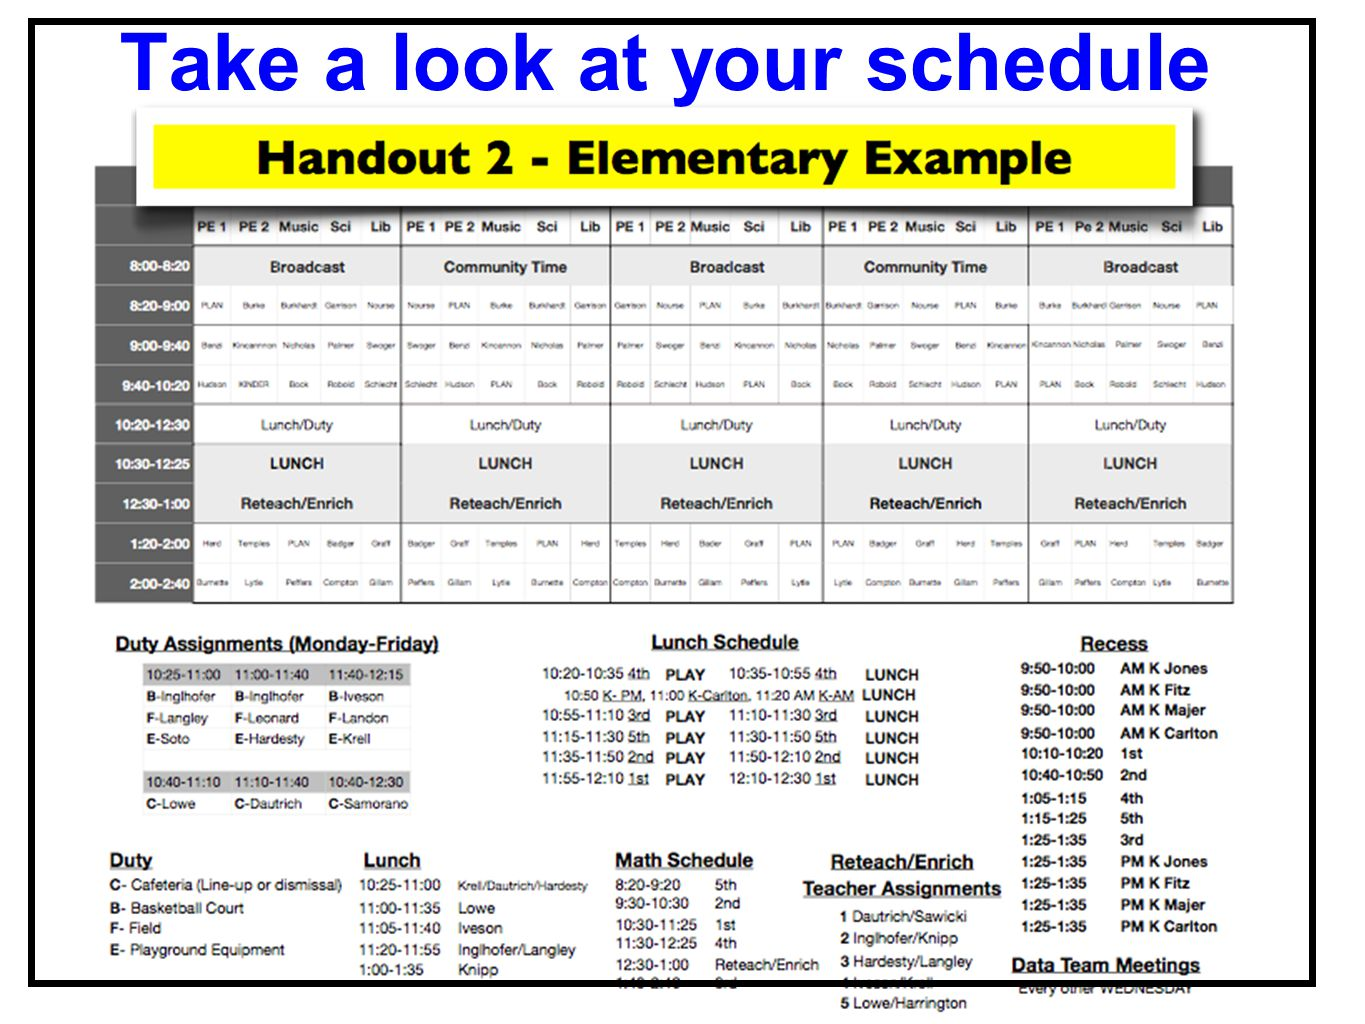 Take a look at your schedule